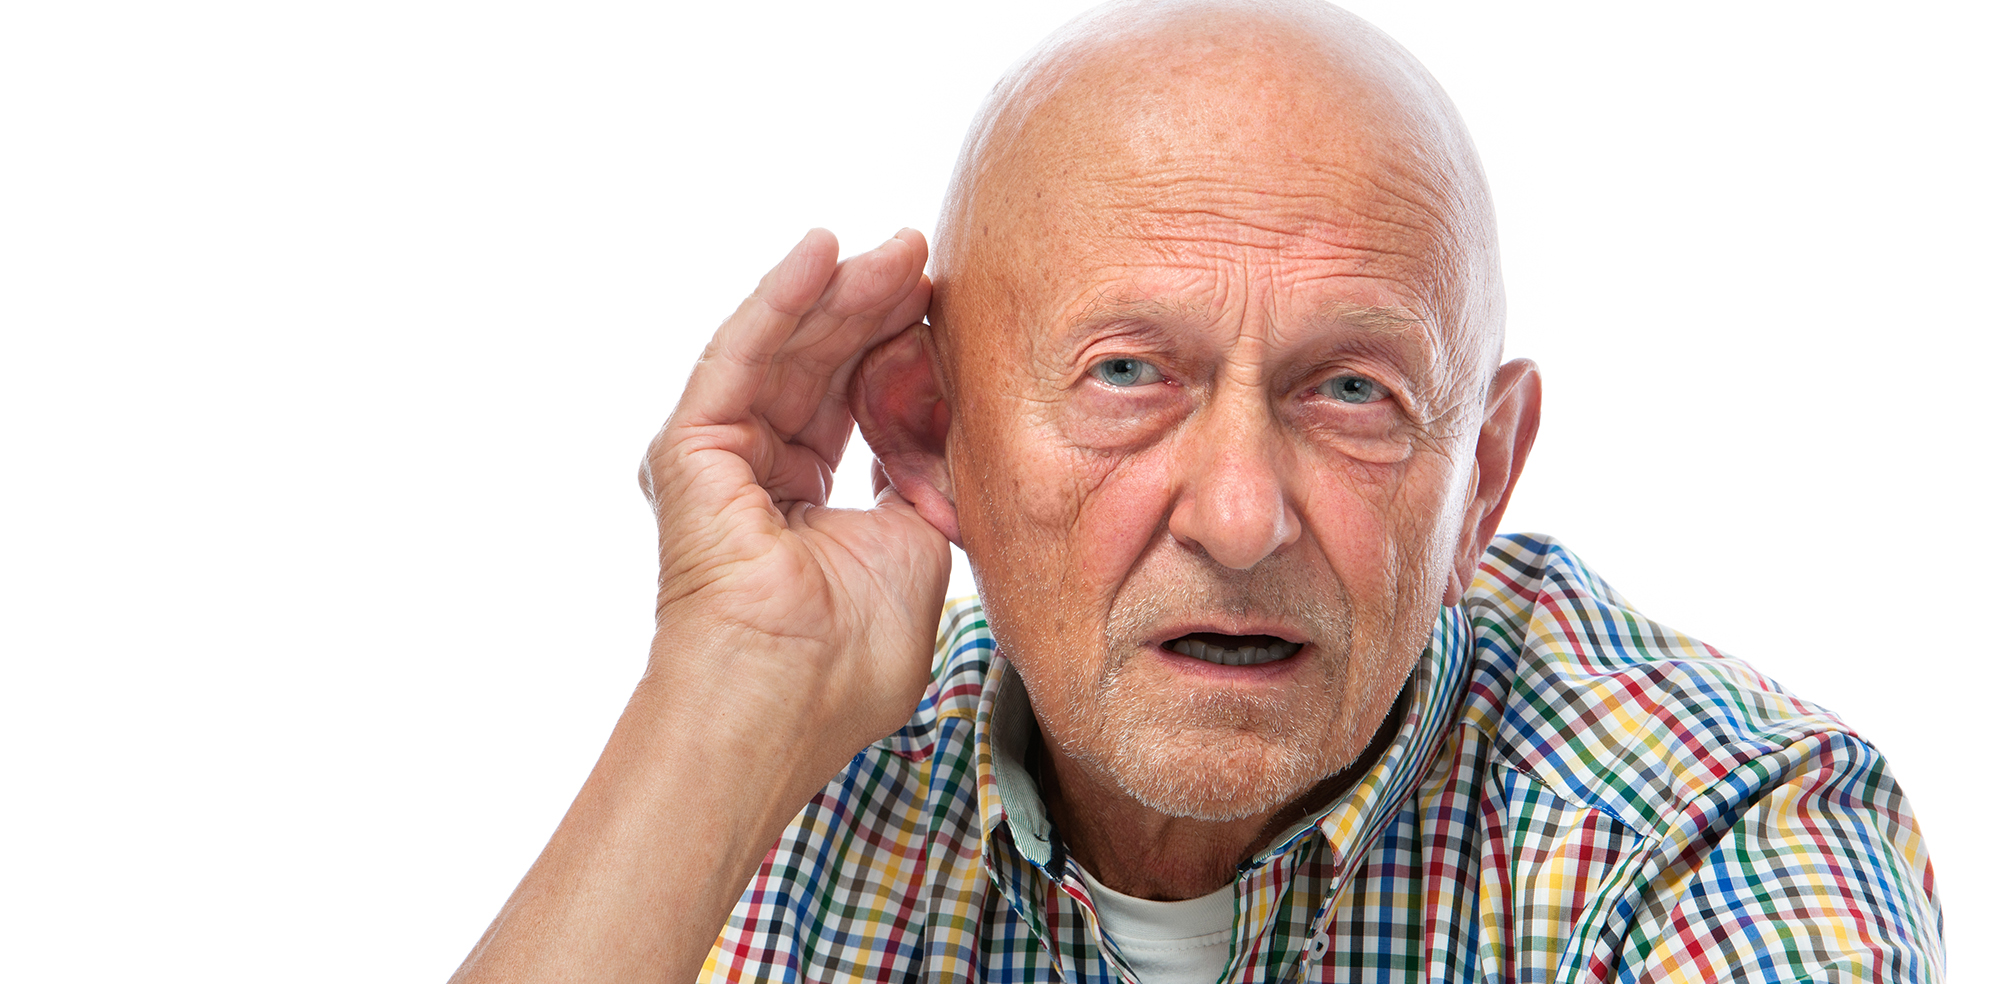 Managing hearing loss is more than getting hearing aids